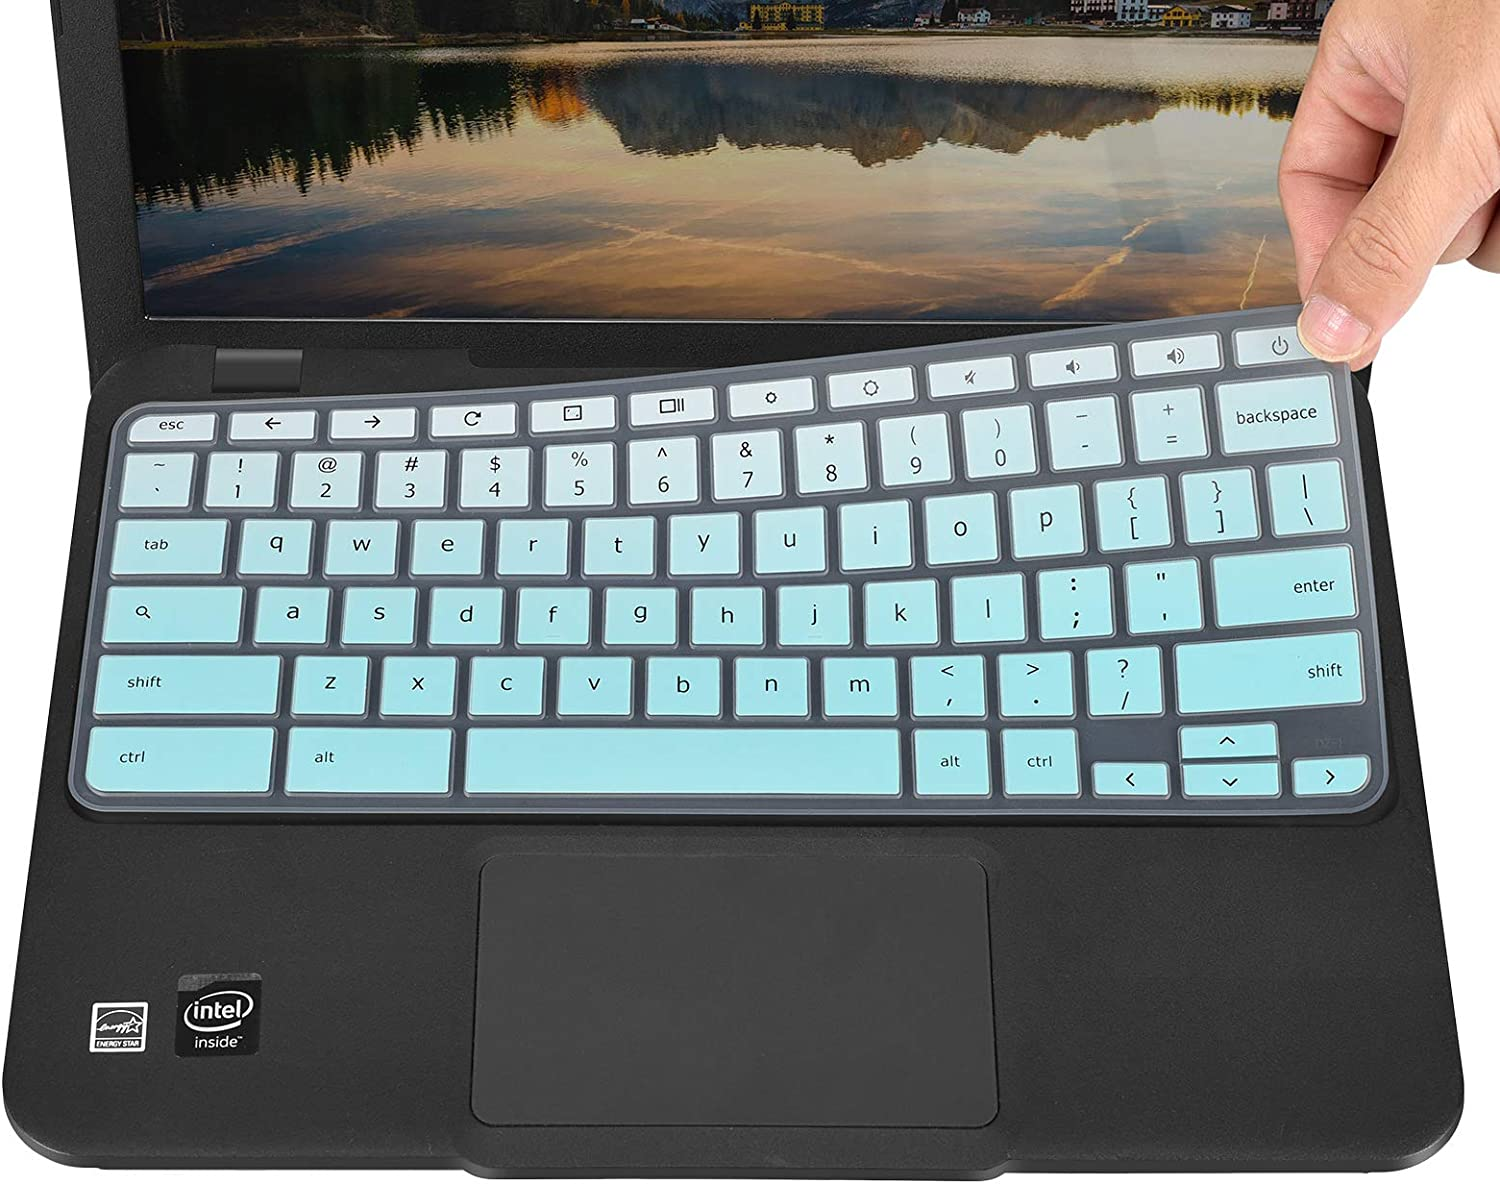 Keyboard Cover for Acer Chromebook R11 CB5-132T, Chromebook 14 CB3-431, Chromebook 514 CB514, Chromebook CB3-532, Chromebook R 13 CB5-312T, Chromebook Spin 311 CP311 CP315 CP713 - Gradual Mint